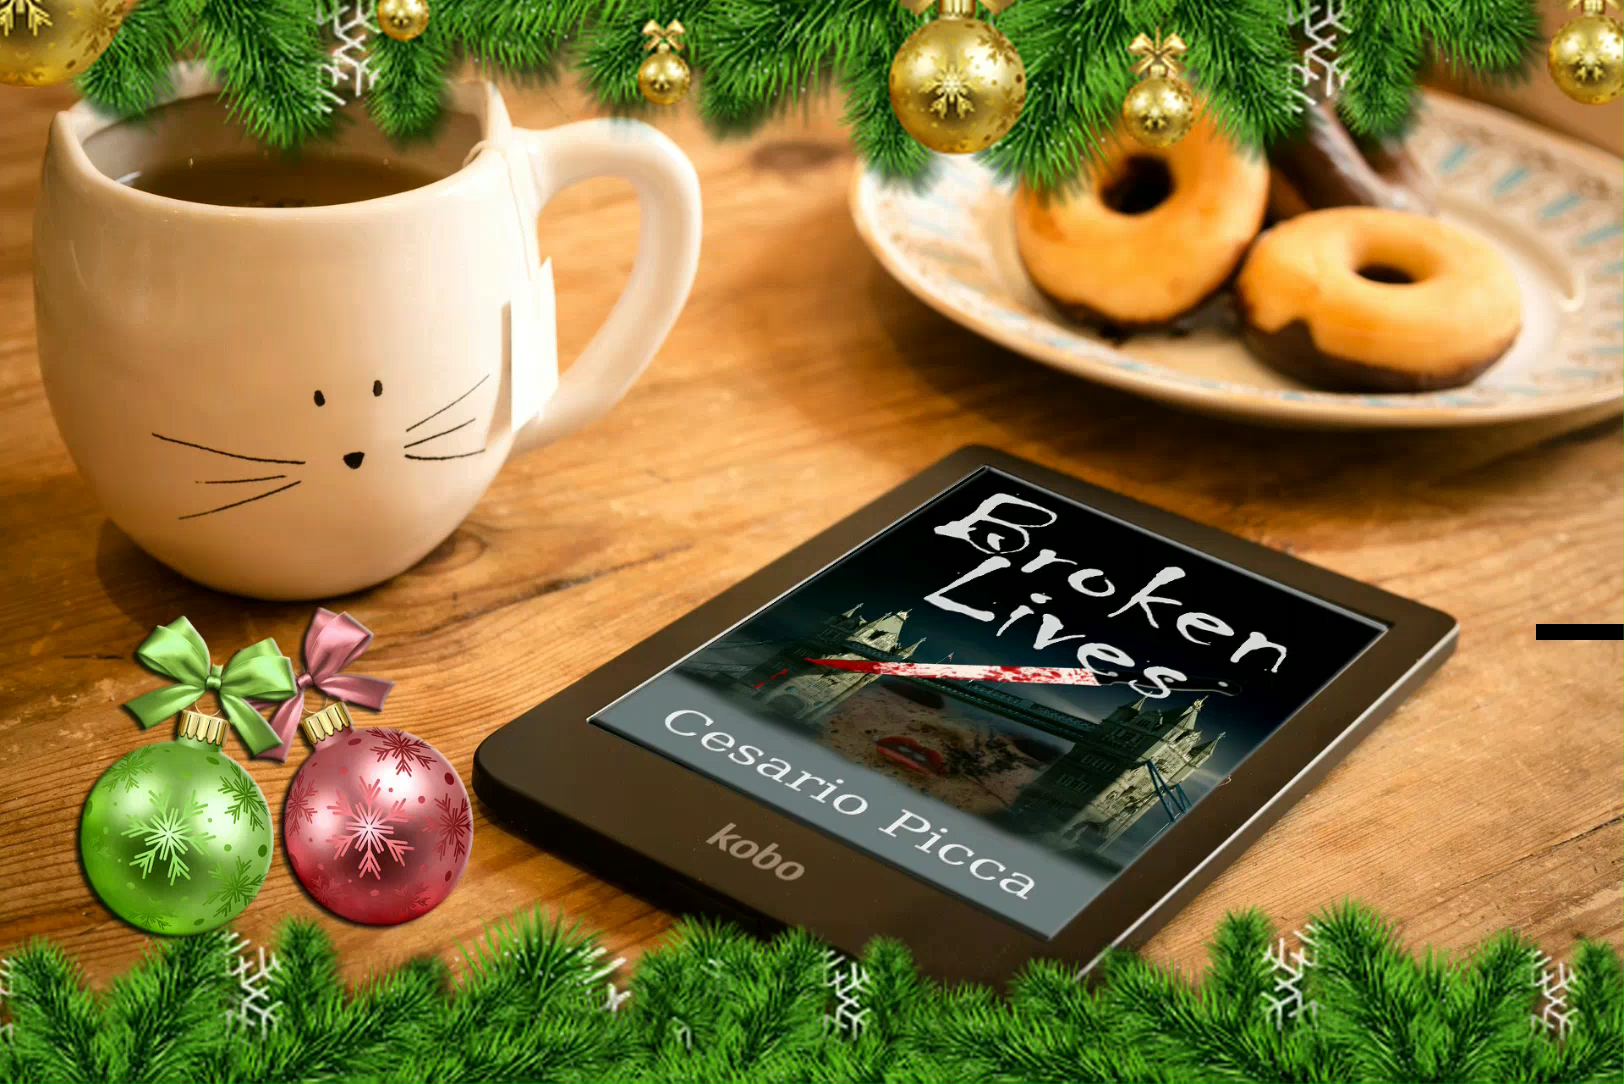 For your #Christmas try #reading or giving a #book away like #SaruSantacroce's #thrillers #BrokenLives or #MurderInTheTremitiIsles #readingcommunity #giftidea #ChristmasIsComing #gifts